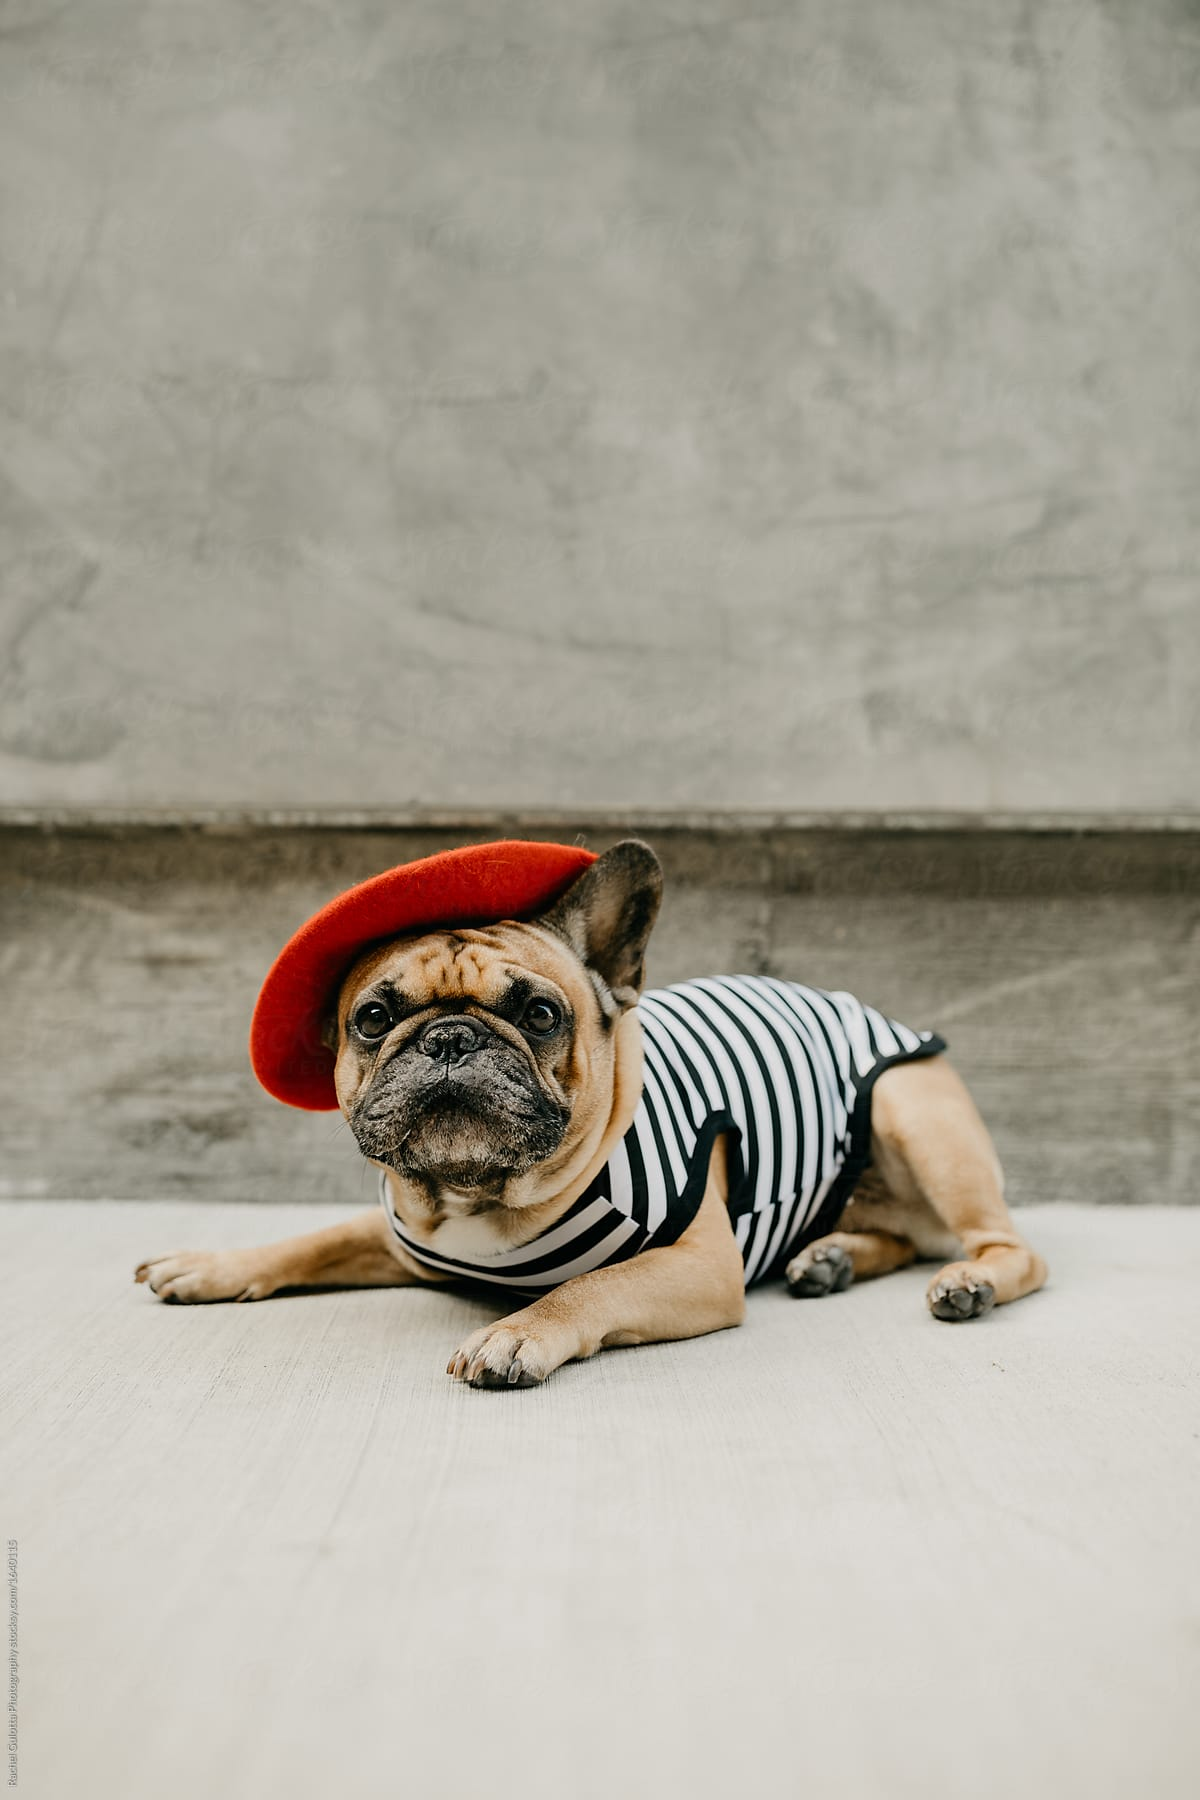 French Bulldog Dressed Up In A French Costume Striped Shirt And Red Beret By Mango Street Lab Dog Halloween Stocksy United